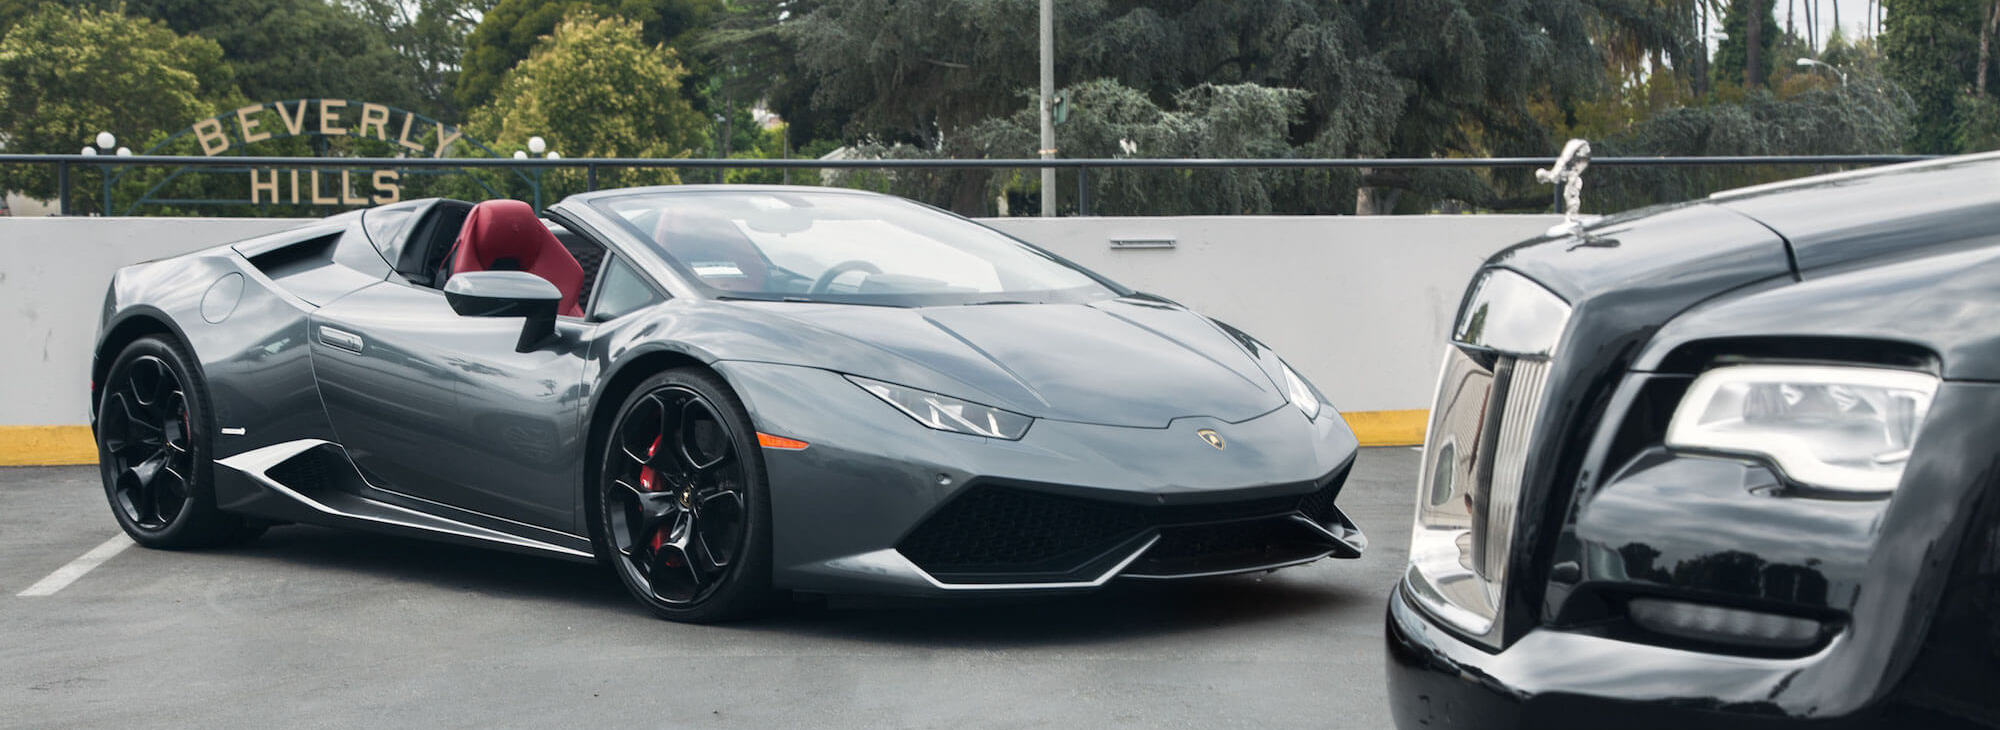 Top 5 Exotic Cars to Rent in Los Angeles